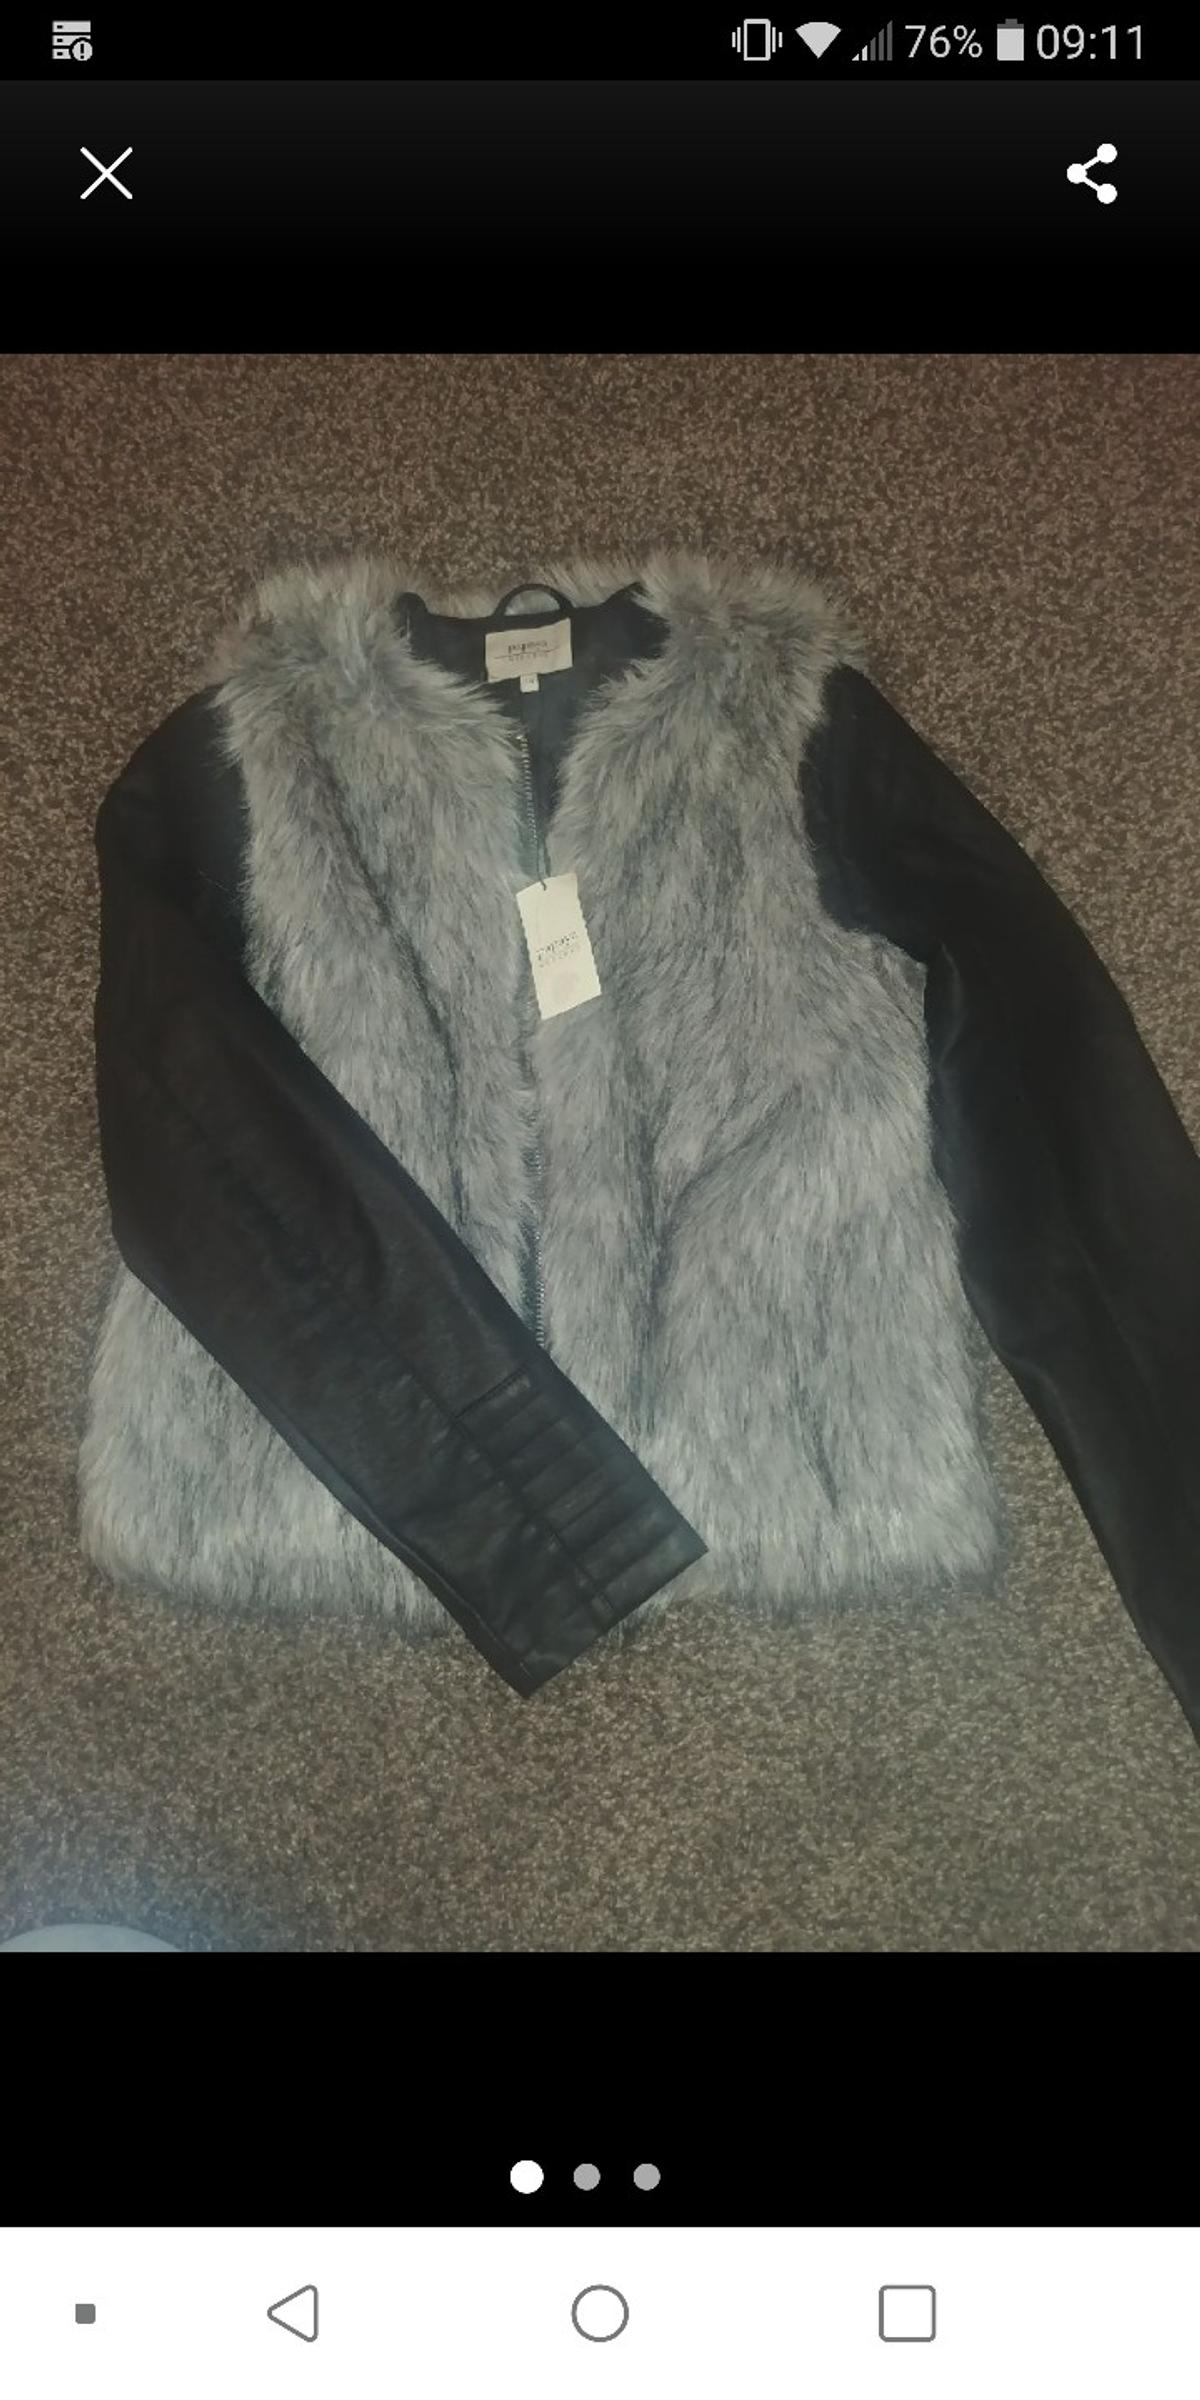 beautiful coat and pictures do no justice what so ever. lovely and soft. size 14 but would say more 12. BRAND NEW WITH TAGS. PAYPAL EXCEPTED AND POSTAGED CAN BE ARRANGED